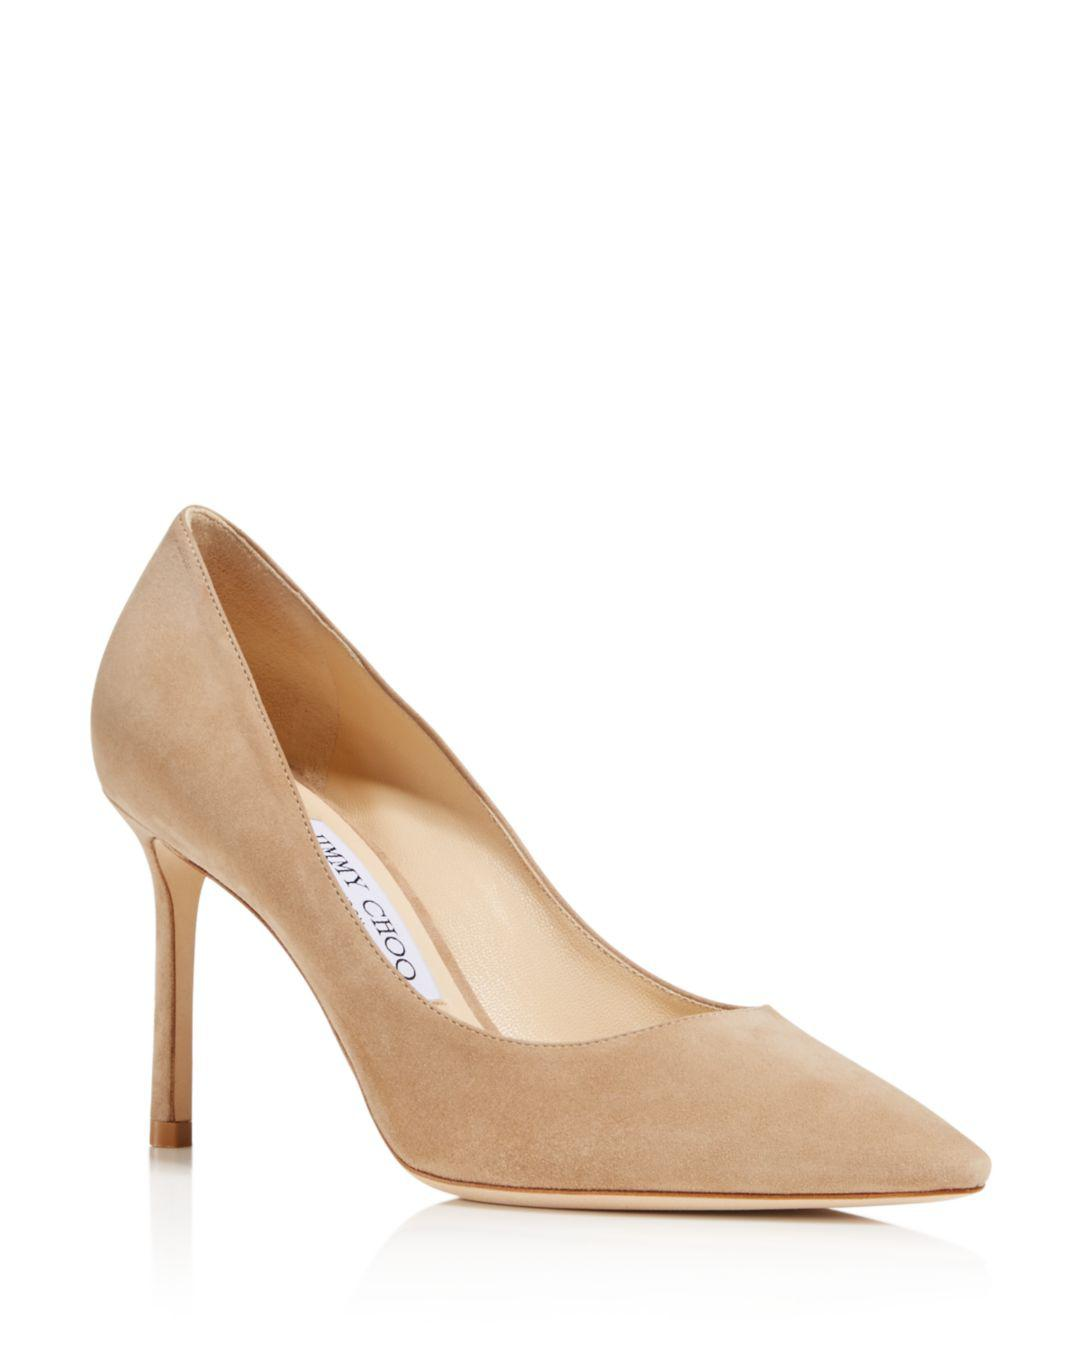 56c9e7c716 Lyst - Jimmy Choo Women's Romy 85 Pointed-toe Pumps in Natural - Save 8%